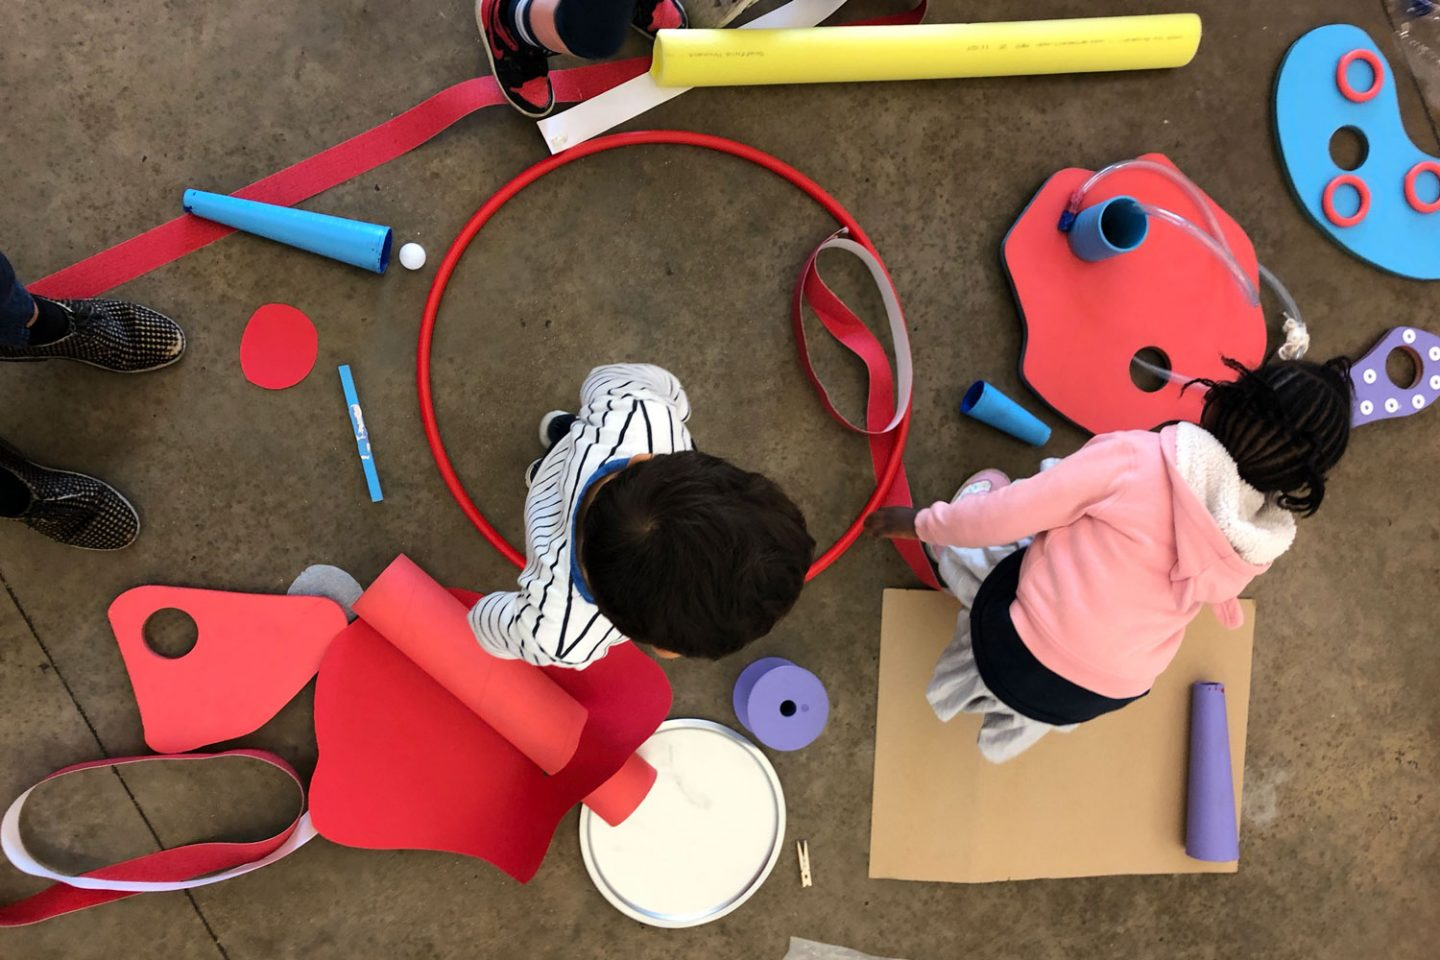 Two children surrounded by colourful paper, a hula hoop, card, and tape